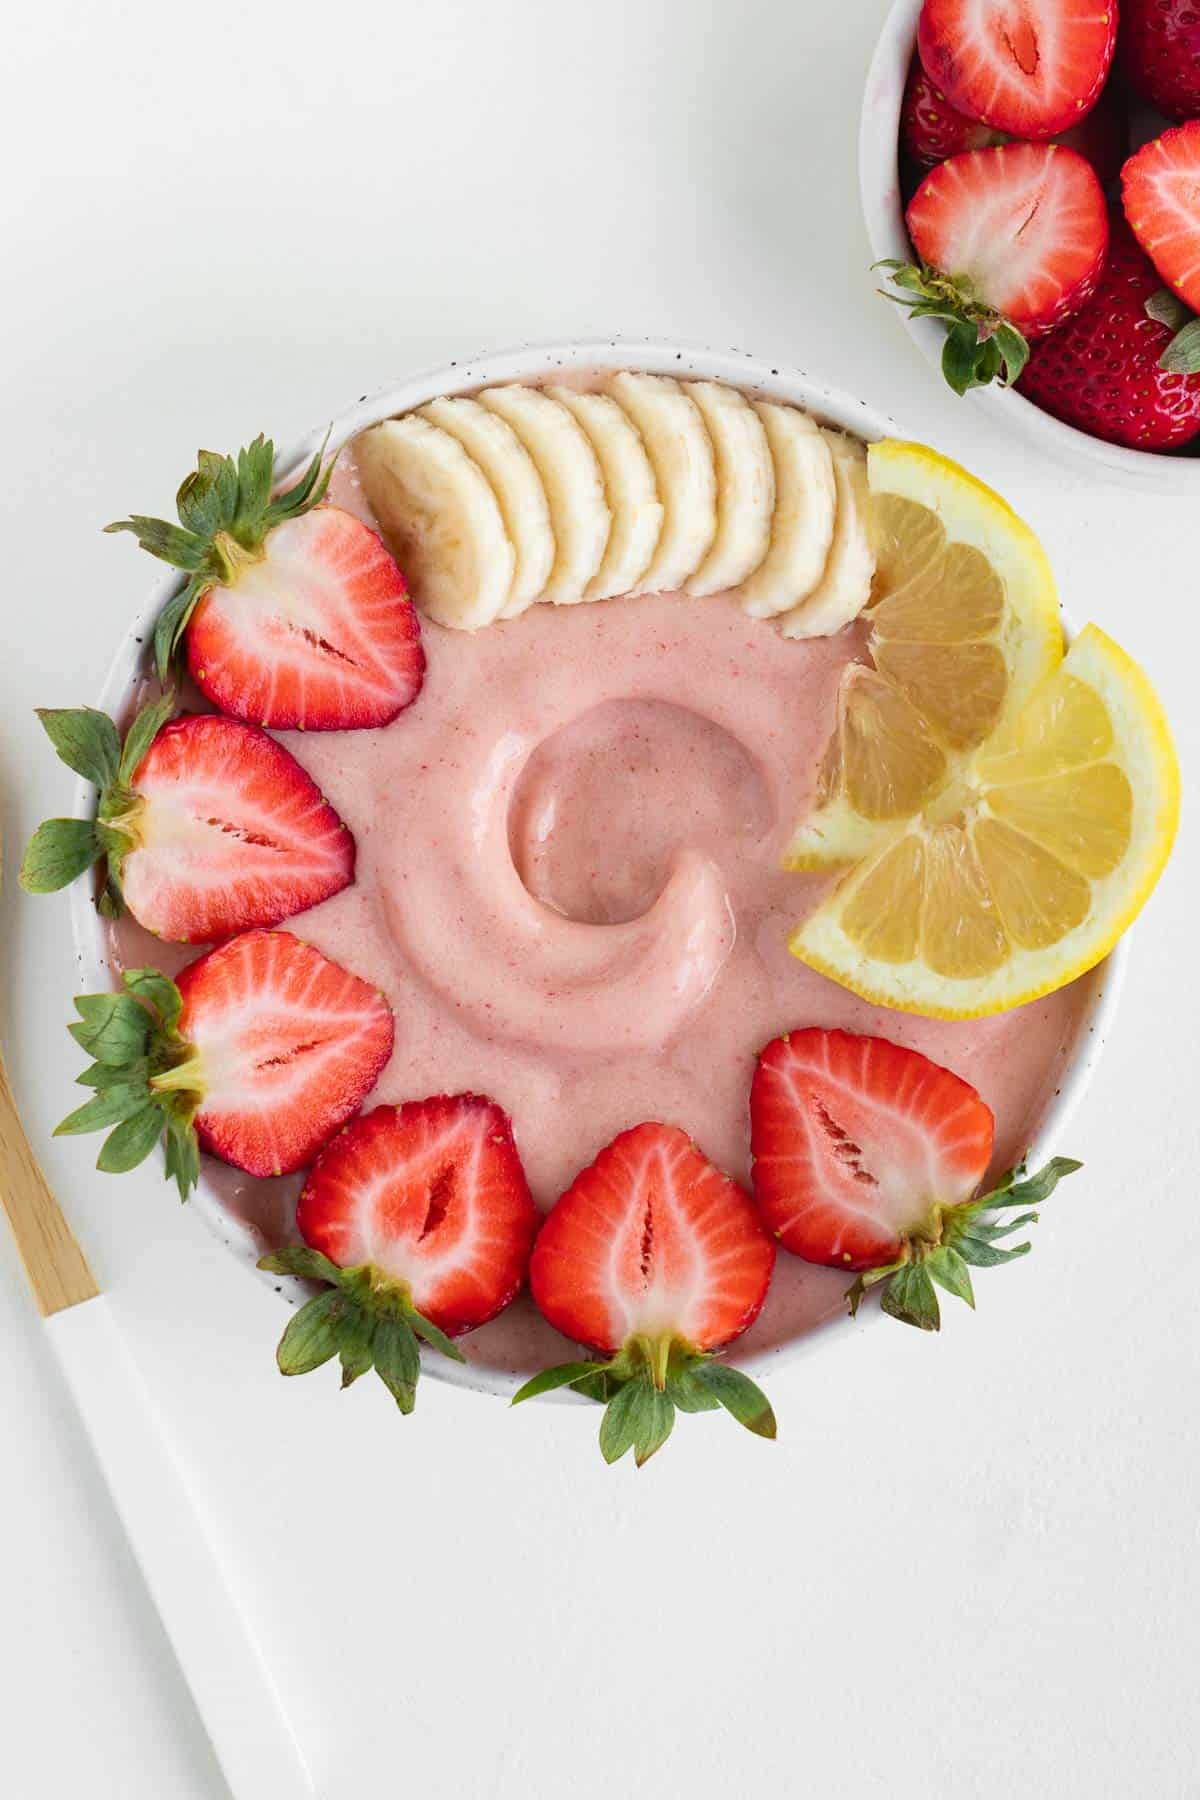 a strawberry lemonade smoothie inside a bowl topped with banana, berries, and sliced lemon